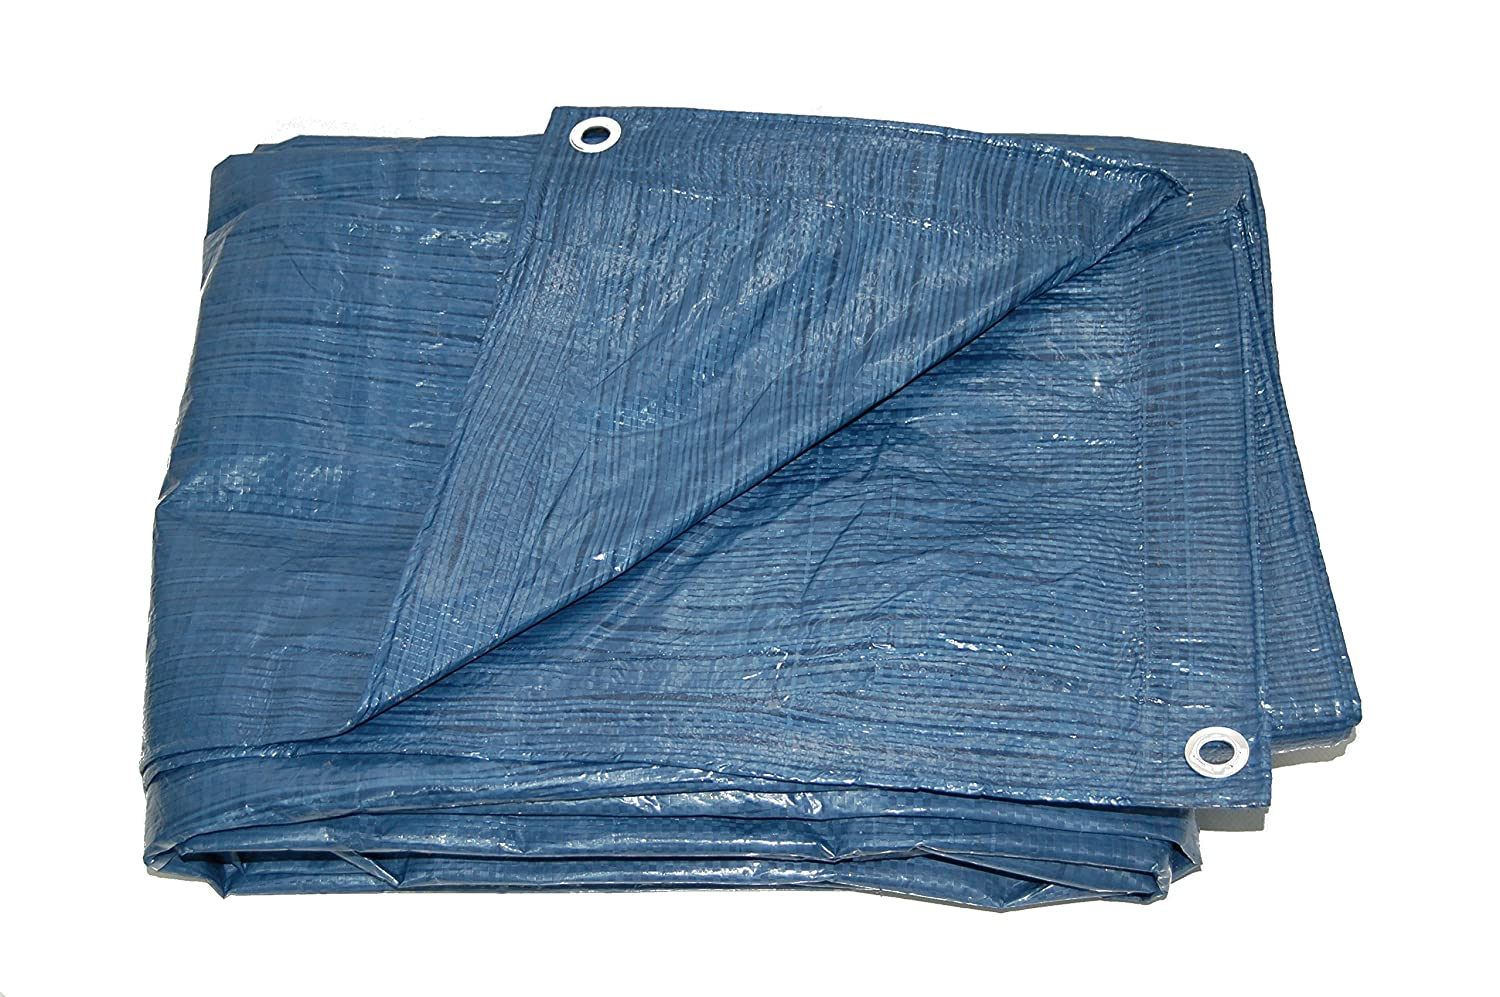 8x8 Weave Gosport Manufacturing Co. 5.1 mil All Season Blue Poly Tarp 12X24